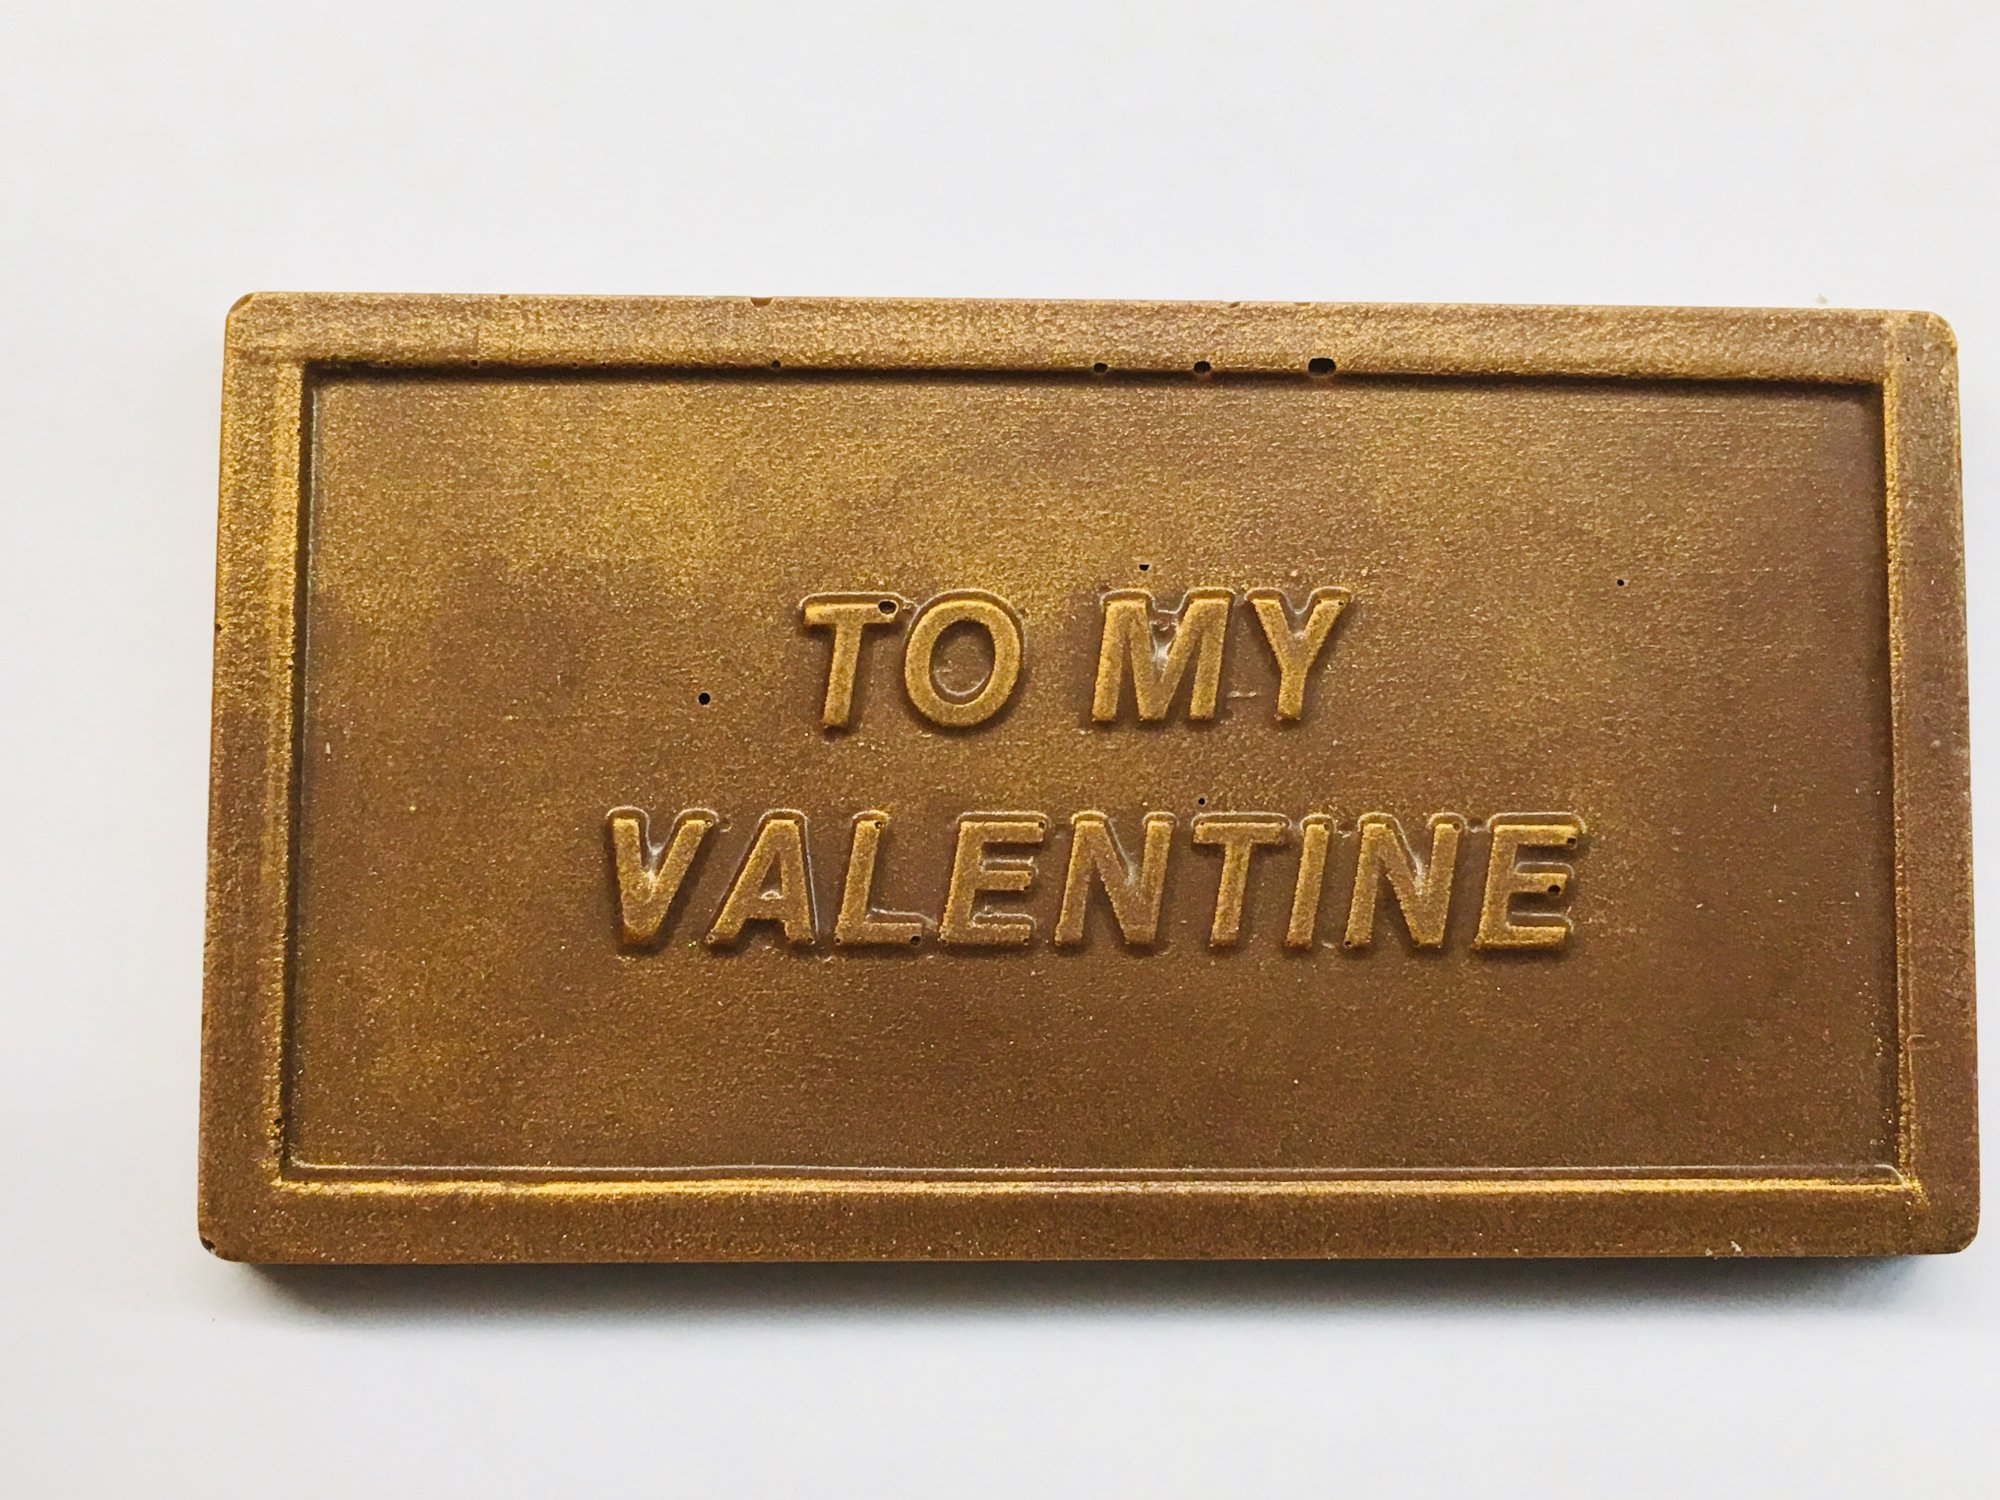 To My Valentine Chocolate Bar